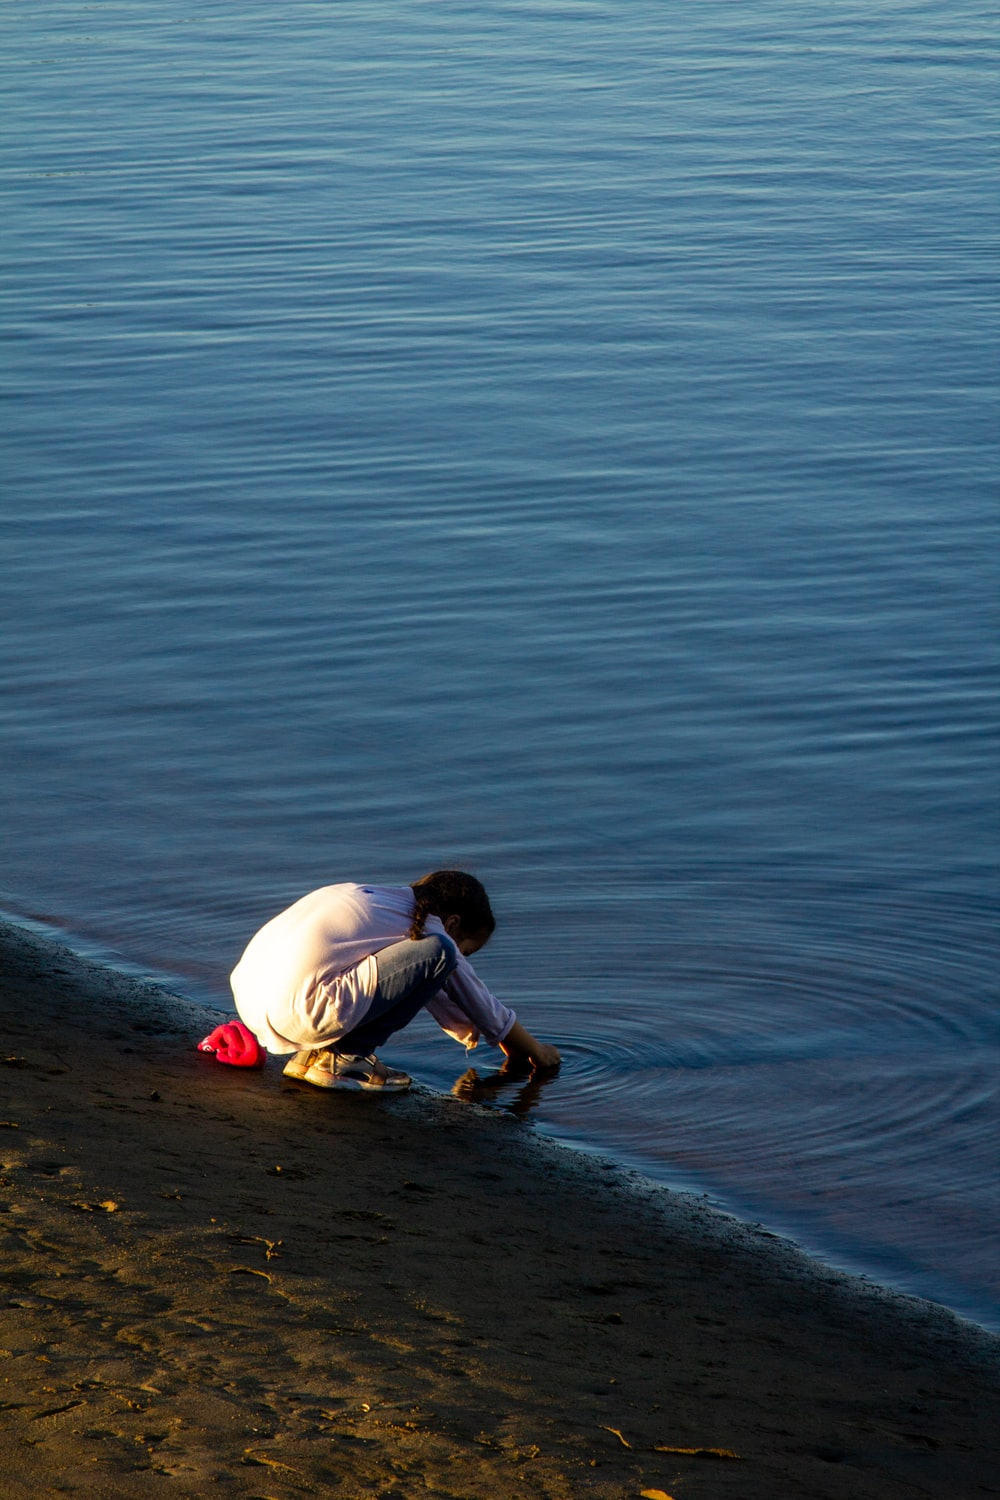 child in white shirt and brown shorts sitting on water during daytime